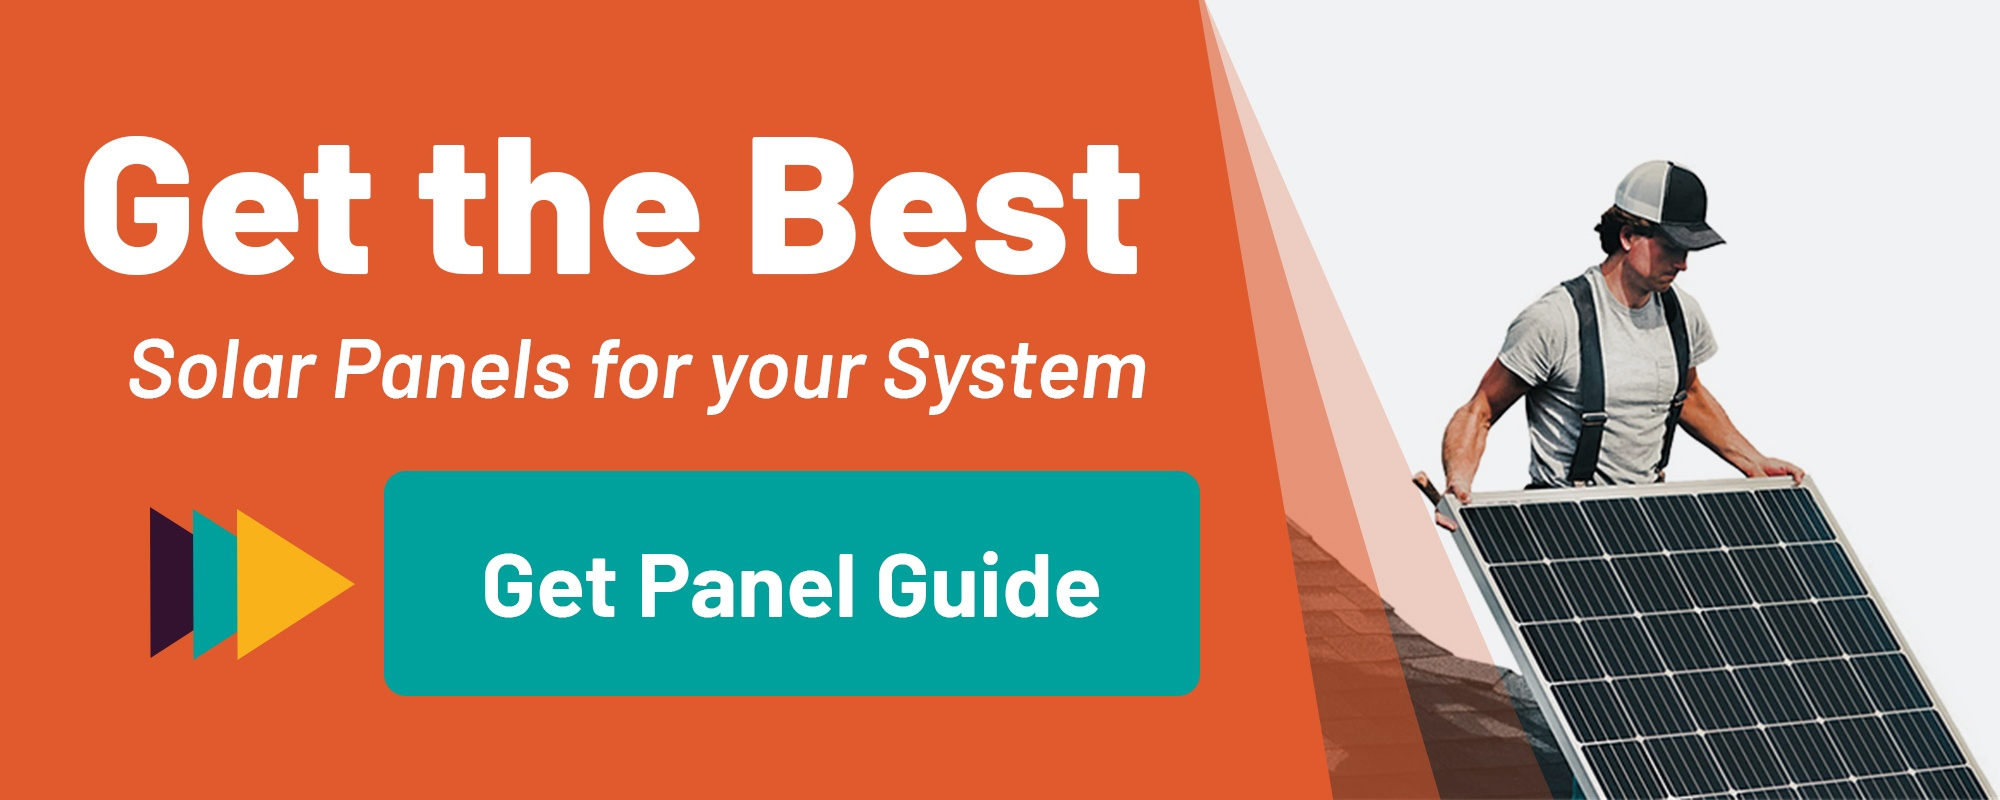 Download our free solar panel buying guide!